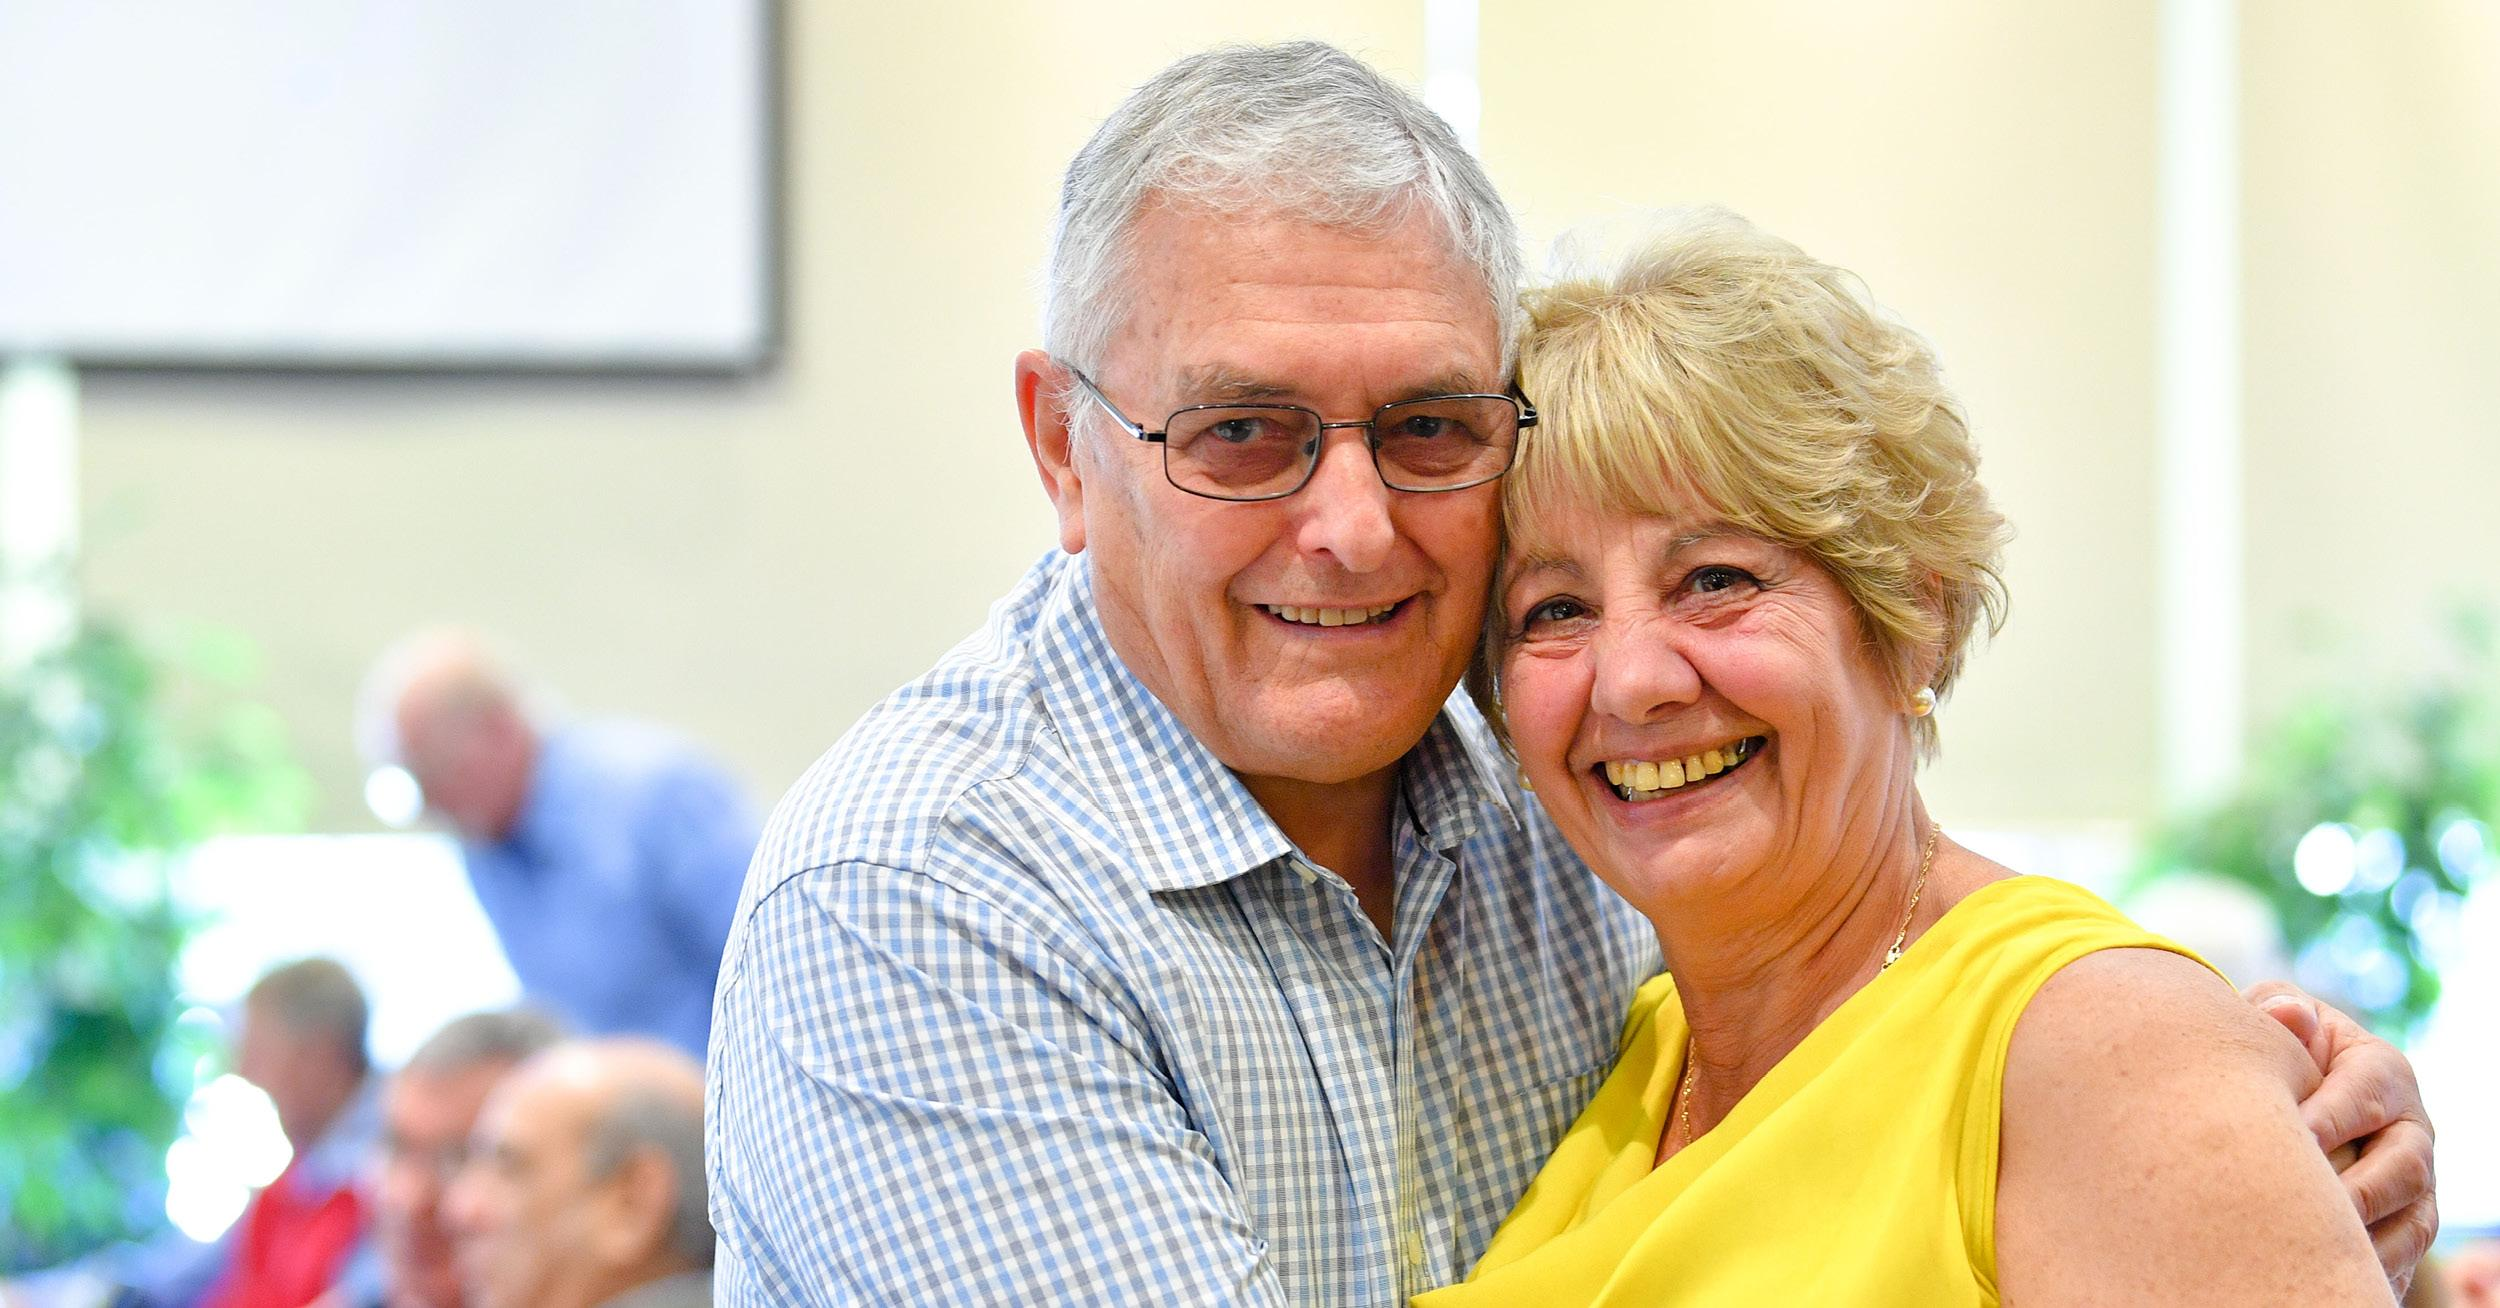 Senior couple hugging and posing for the camera